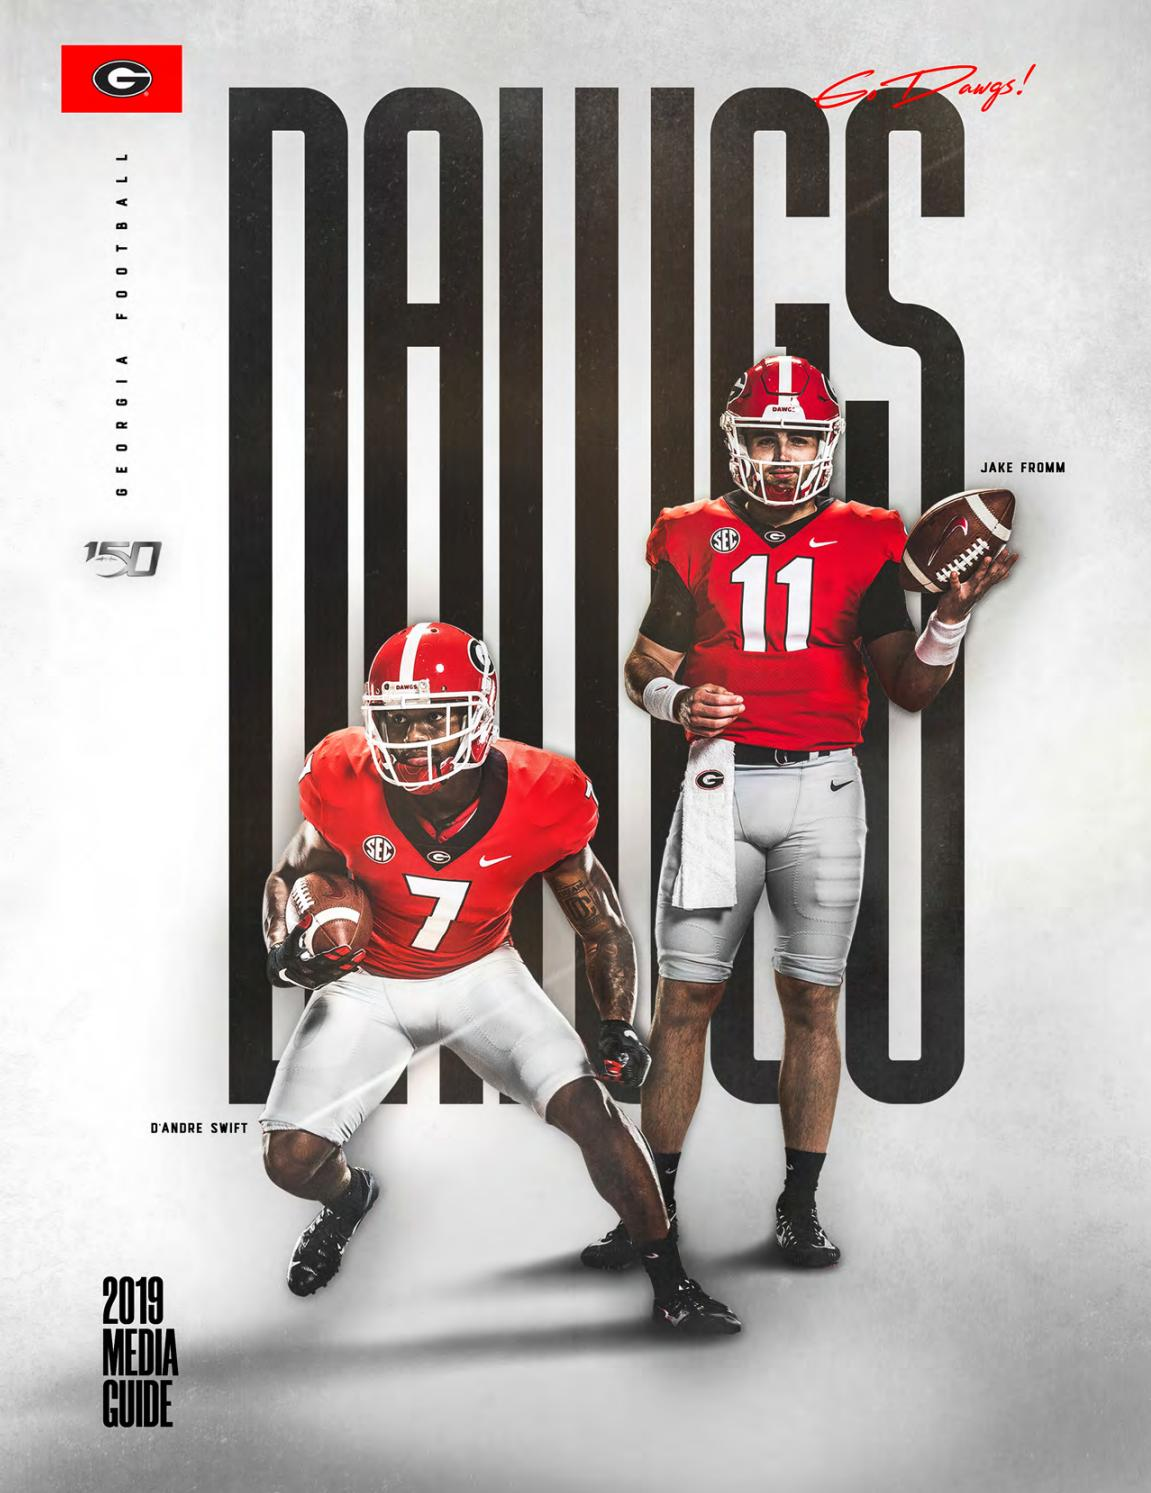 2019 Georgia Bulldogs Football Media Guide By Georgia Bulldogs Athletics Issuu